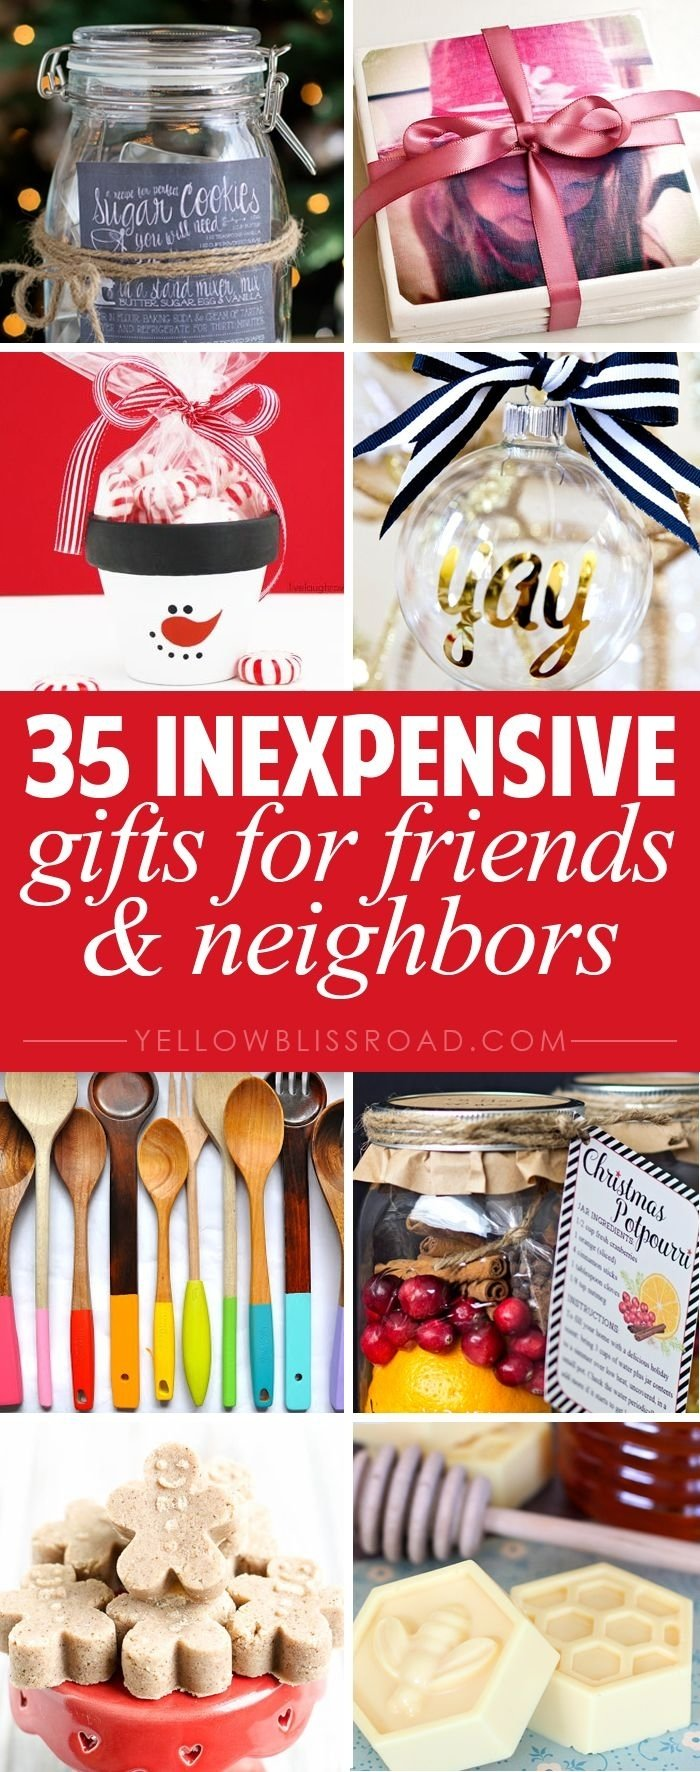 10 Stylish Christmas Gift Ideas On A Budget les 27 meilleures images du tableau gifts sur pinterest sucreries 1